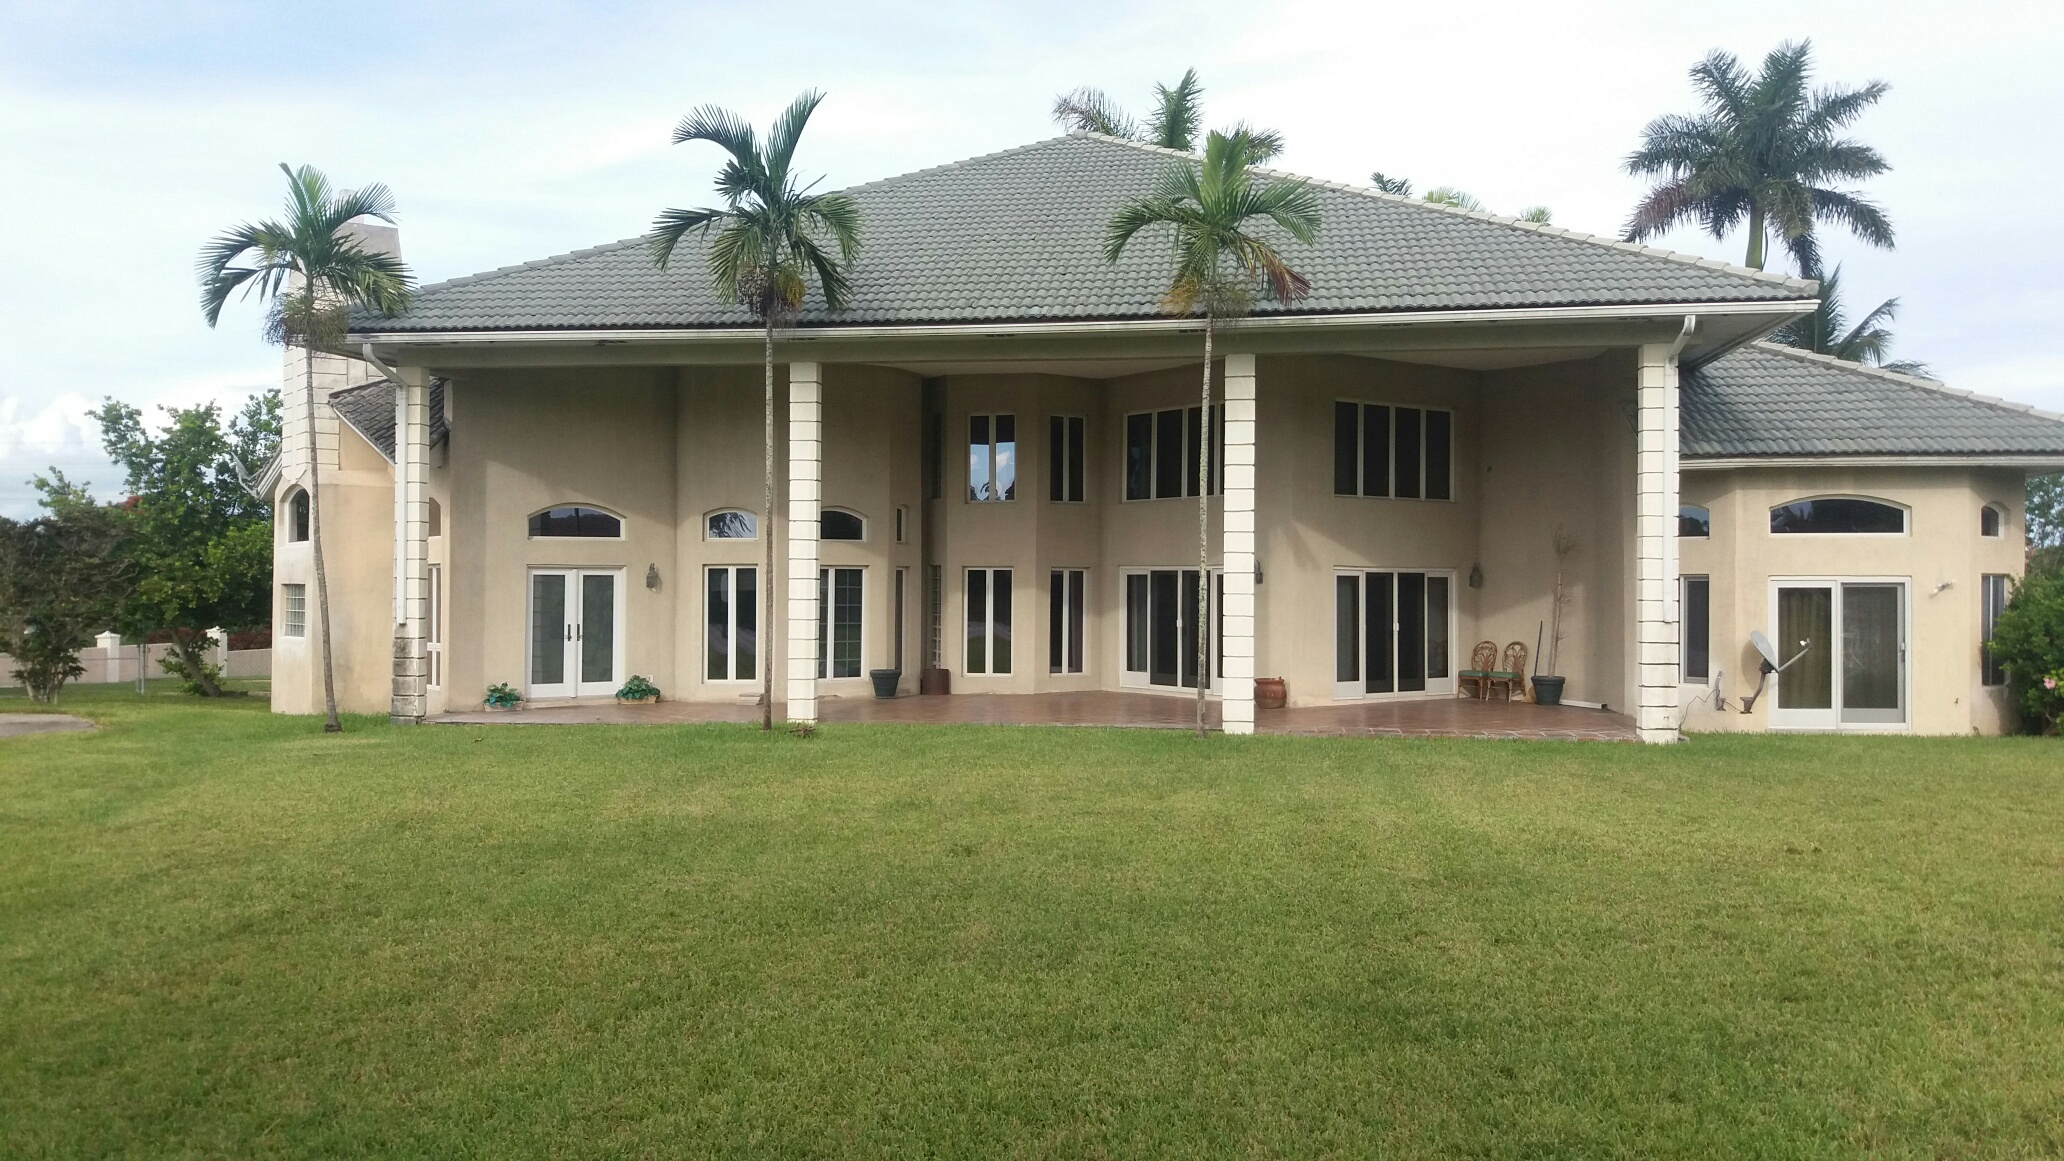 Single Family Home for Sale at Bahamia Home sitting on ACRE of Land - MLS 27974 Bahamia, Grand Bahama, Bahamas